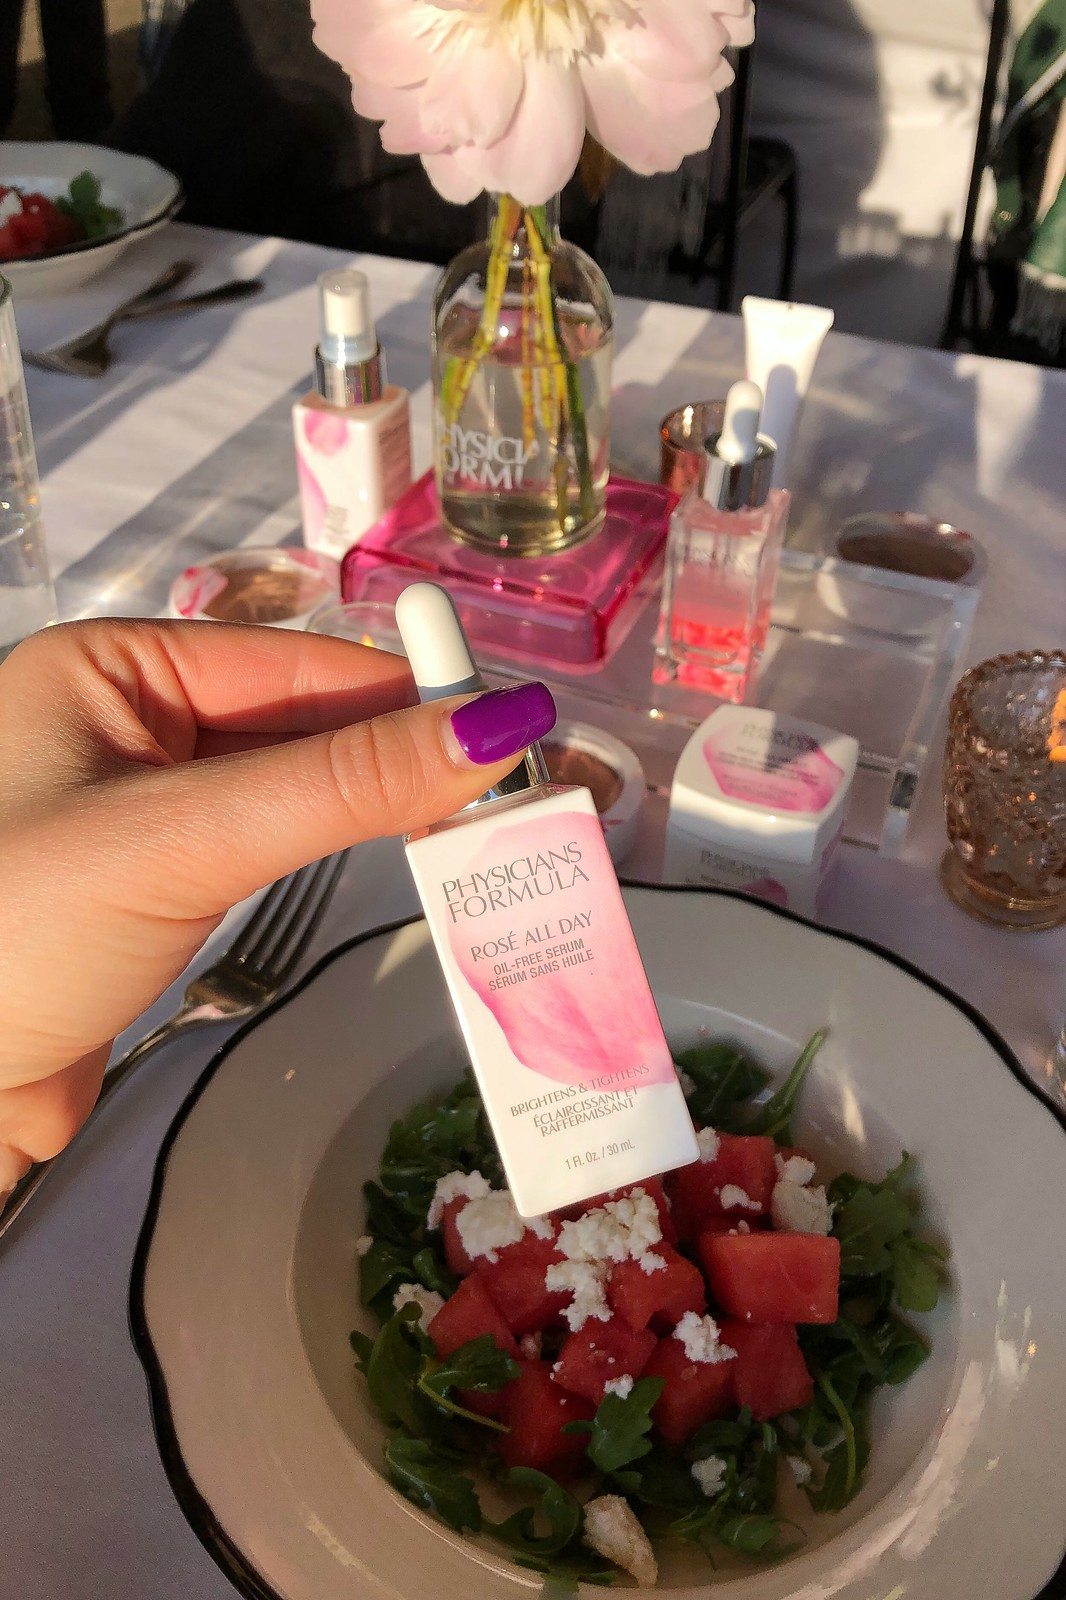 Physicians Formula Rose All Day Serum Collection